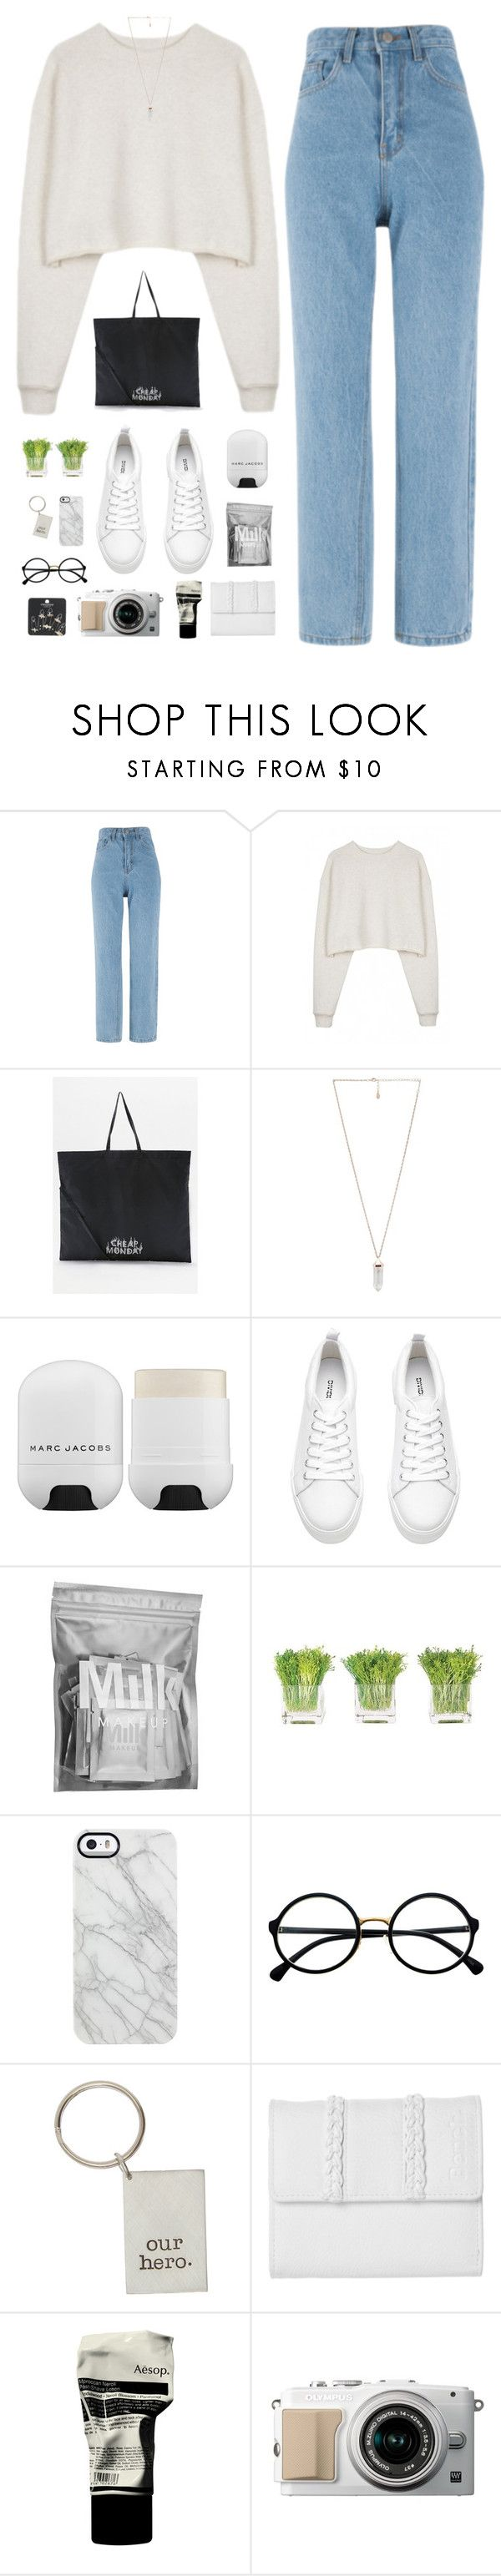 """""""Yong Jun Hyung (Highlight) ft. Heize - Wonder If"""" by nut-and-nude ❤ liked on Polyvore featuring Organic by John Patrick, Cheap Monday, Amber Sceats, Marc Jacobs, H&M, MILK MAKEUP, NDI, Uncommon, Retrò and Bench"""